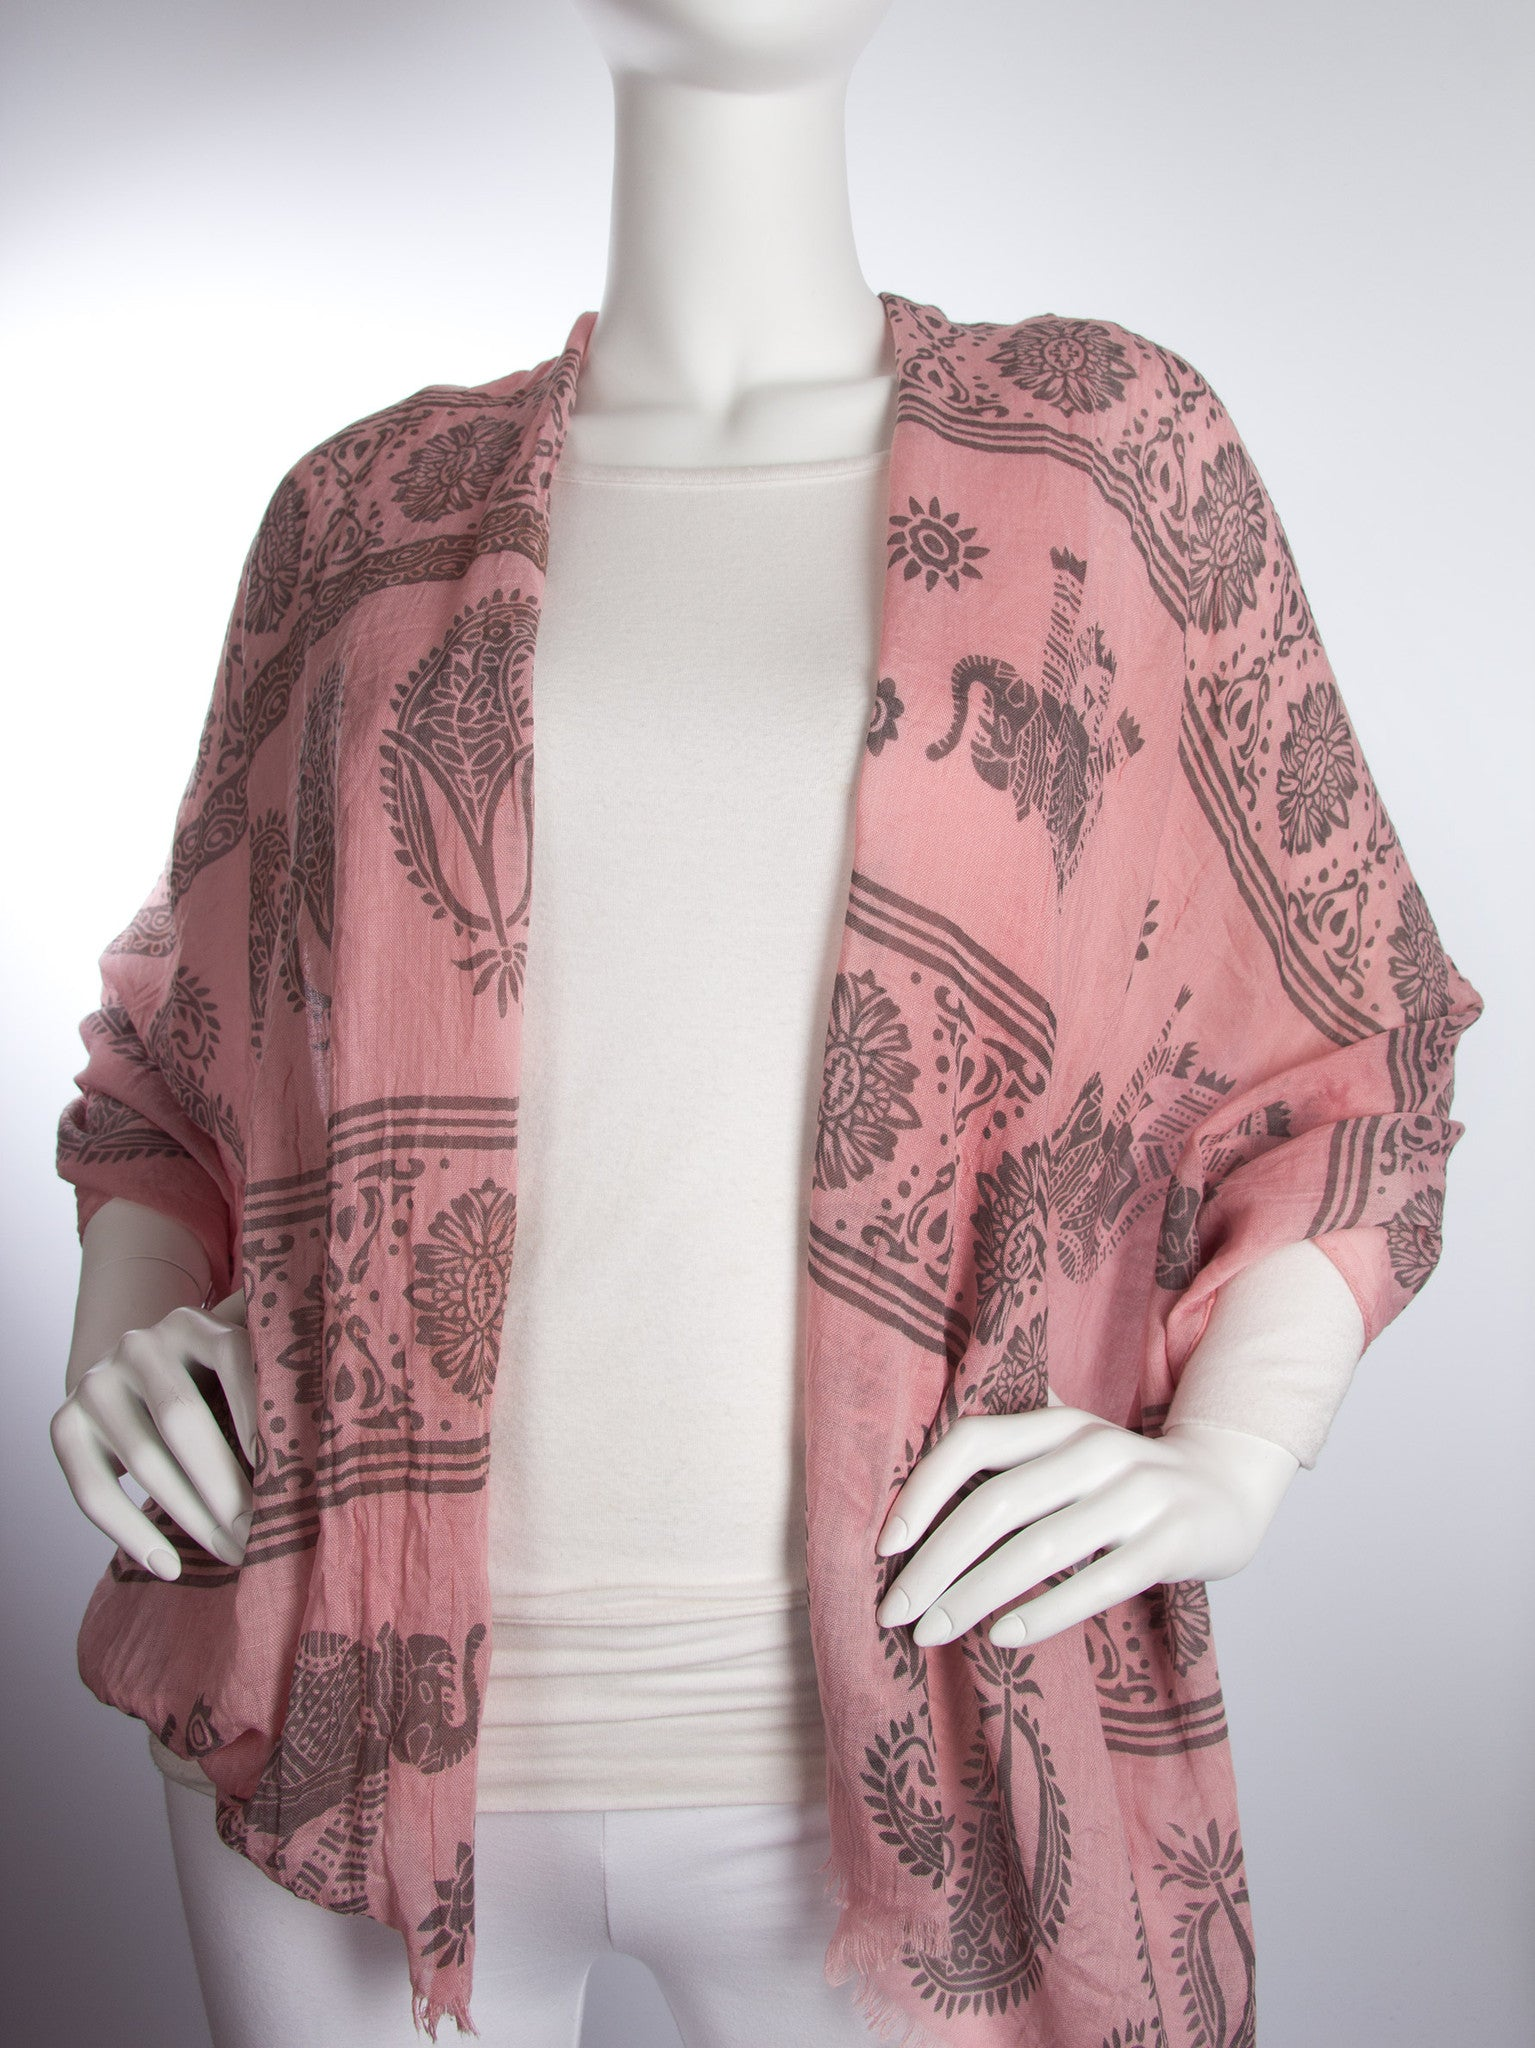 Scarves - Gajai Shawl,100% Cotton Paisley Indian Elephant Print Scarf -() Bohomonde  - 6